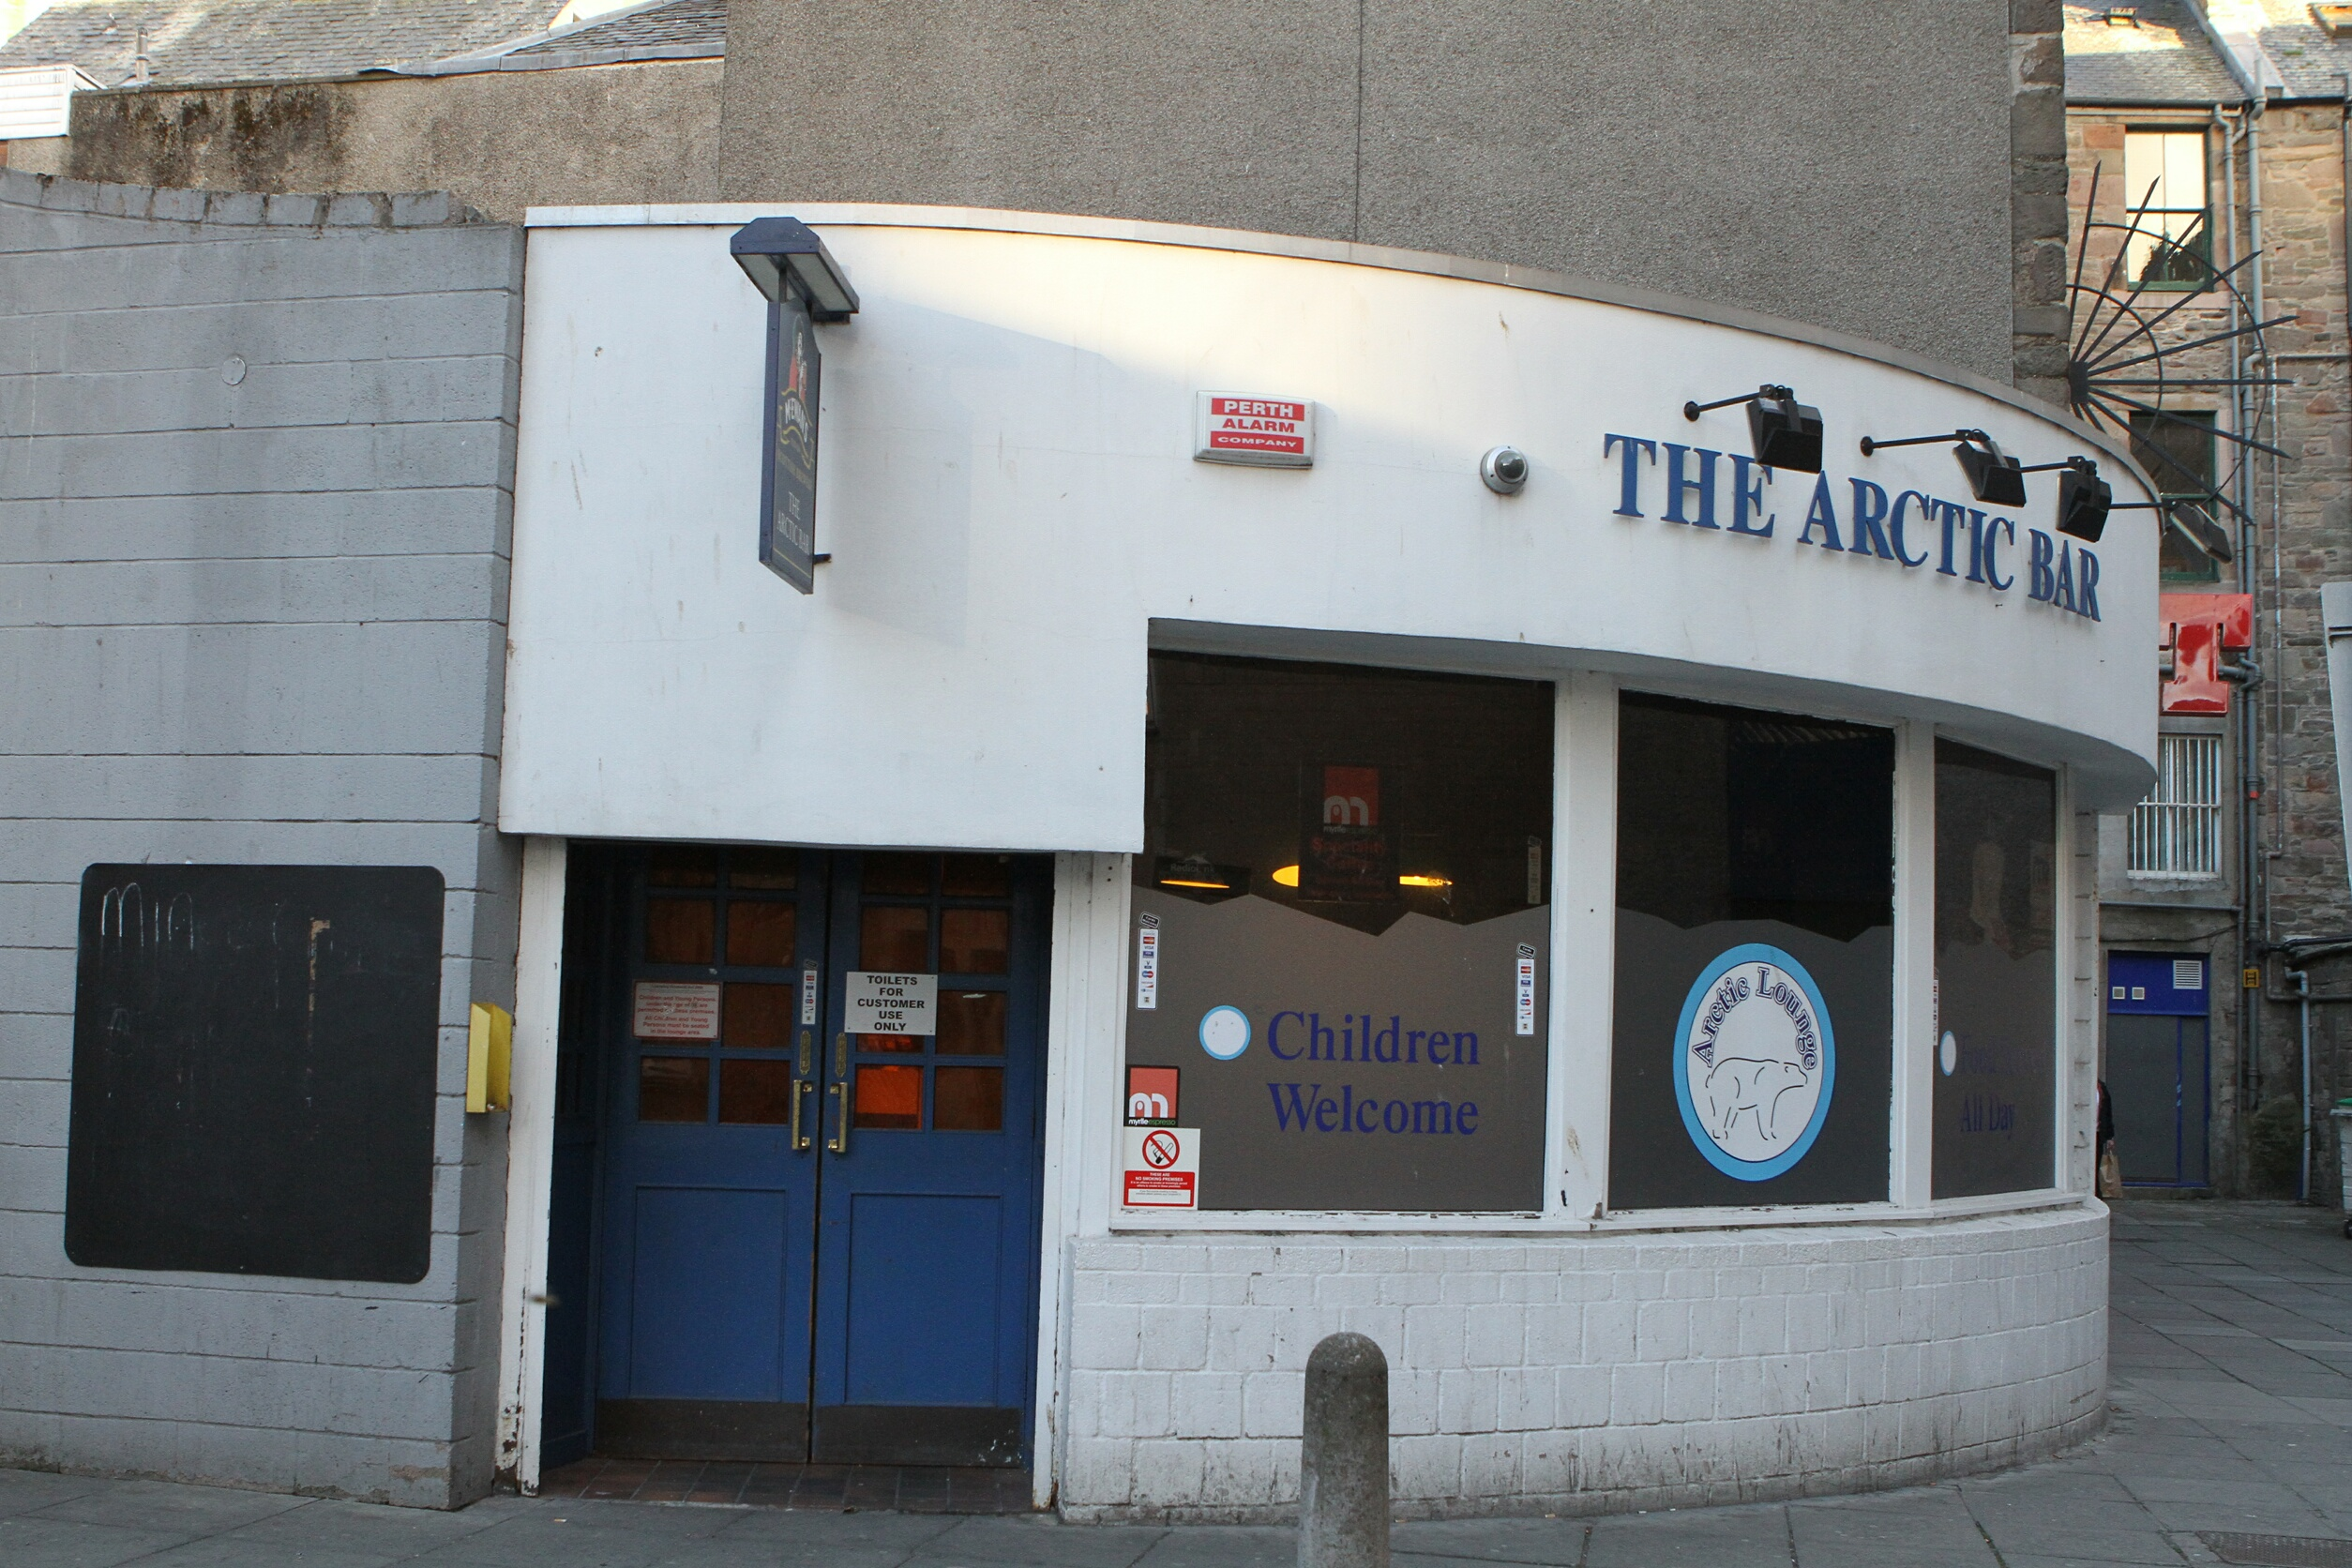 The Arctic Bar in Dundee.